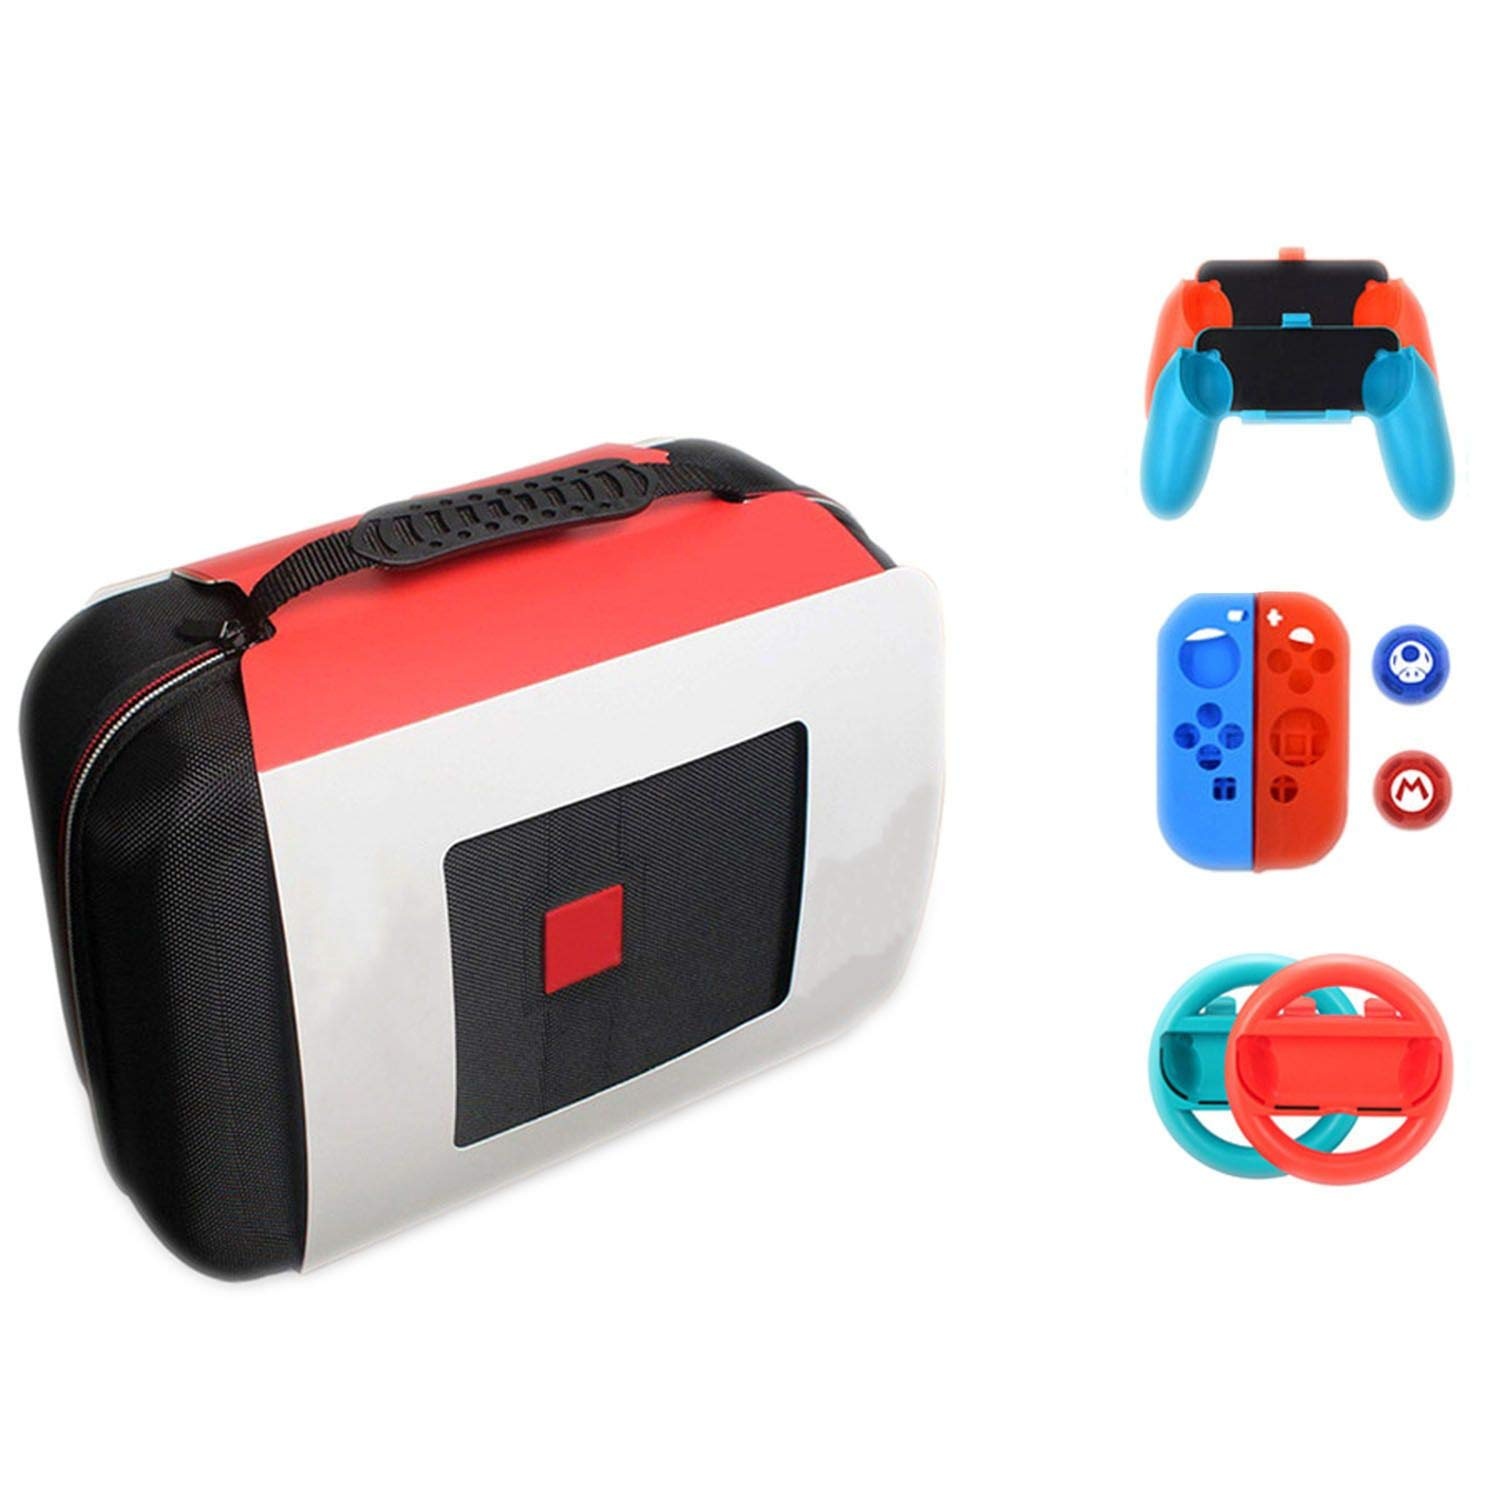 Nintendo Switch NS Accessories Console Carrying Storage Bag Hard Case Joystick Handle Grips and Silicone Case for Nintendo Switch,P-2